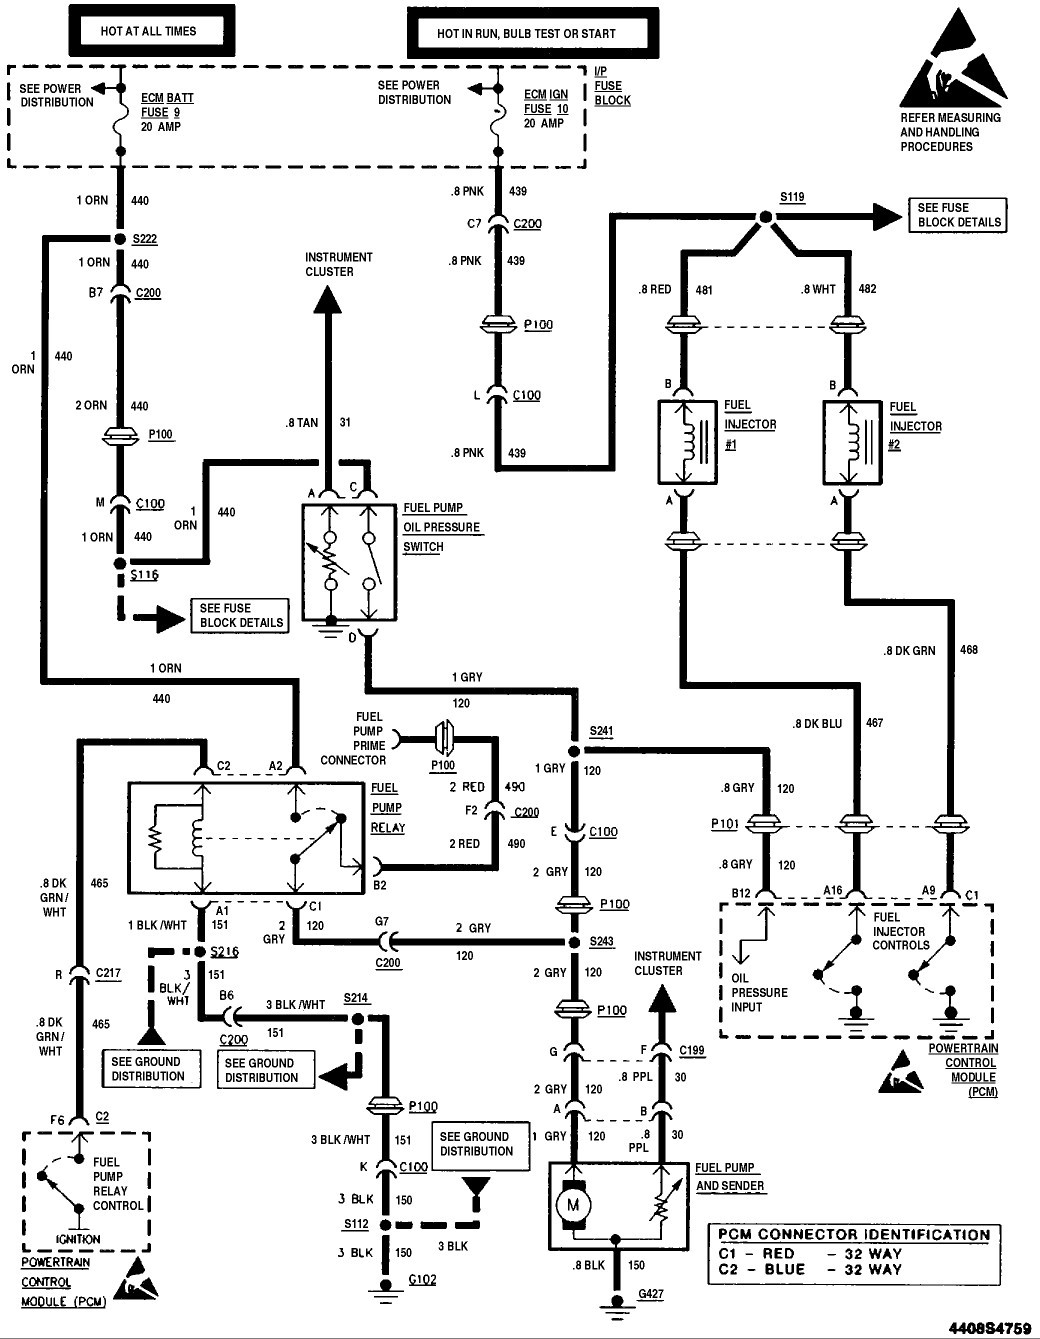 Wiring Diagram PDF: 2002 S10 Fuel Pump Wiring Diagram